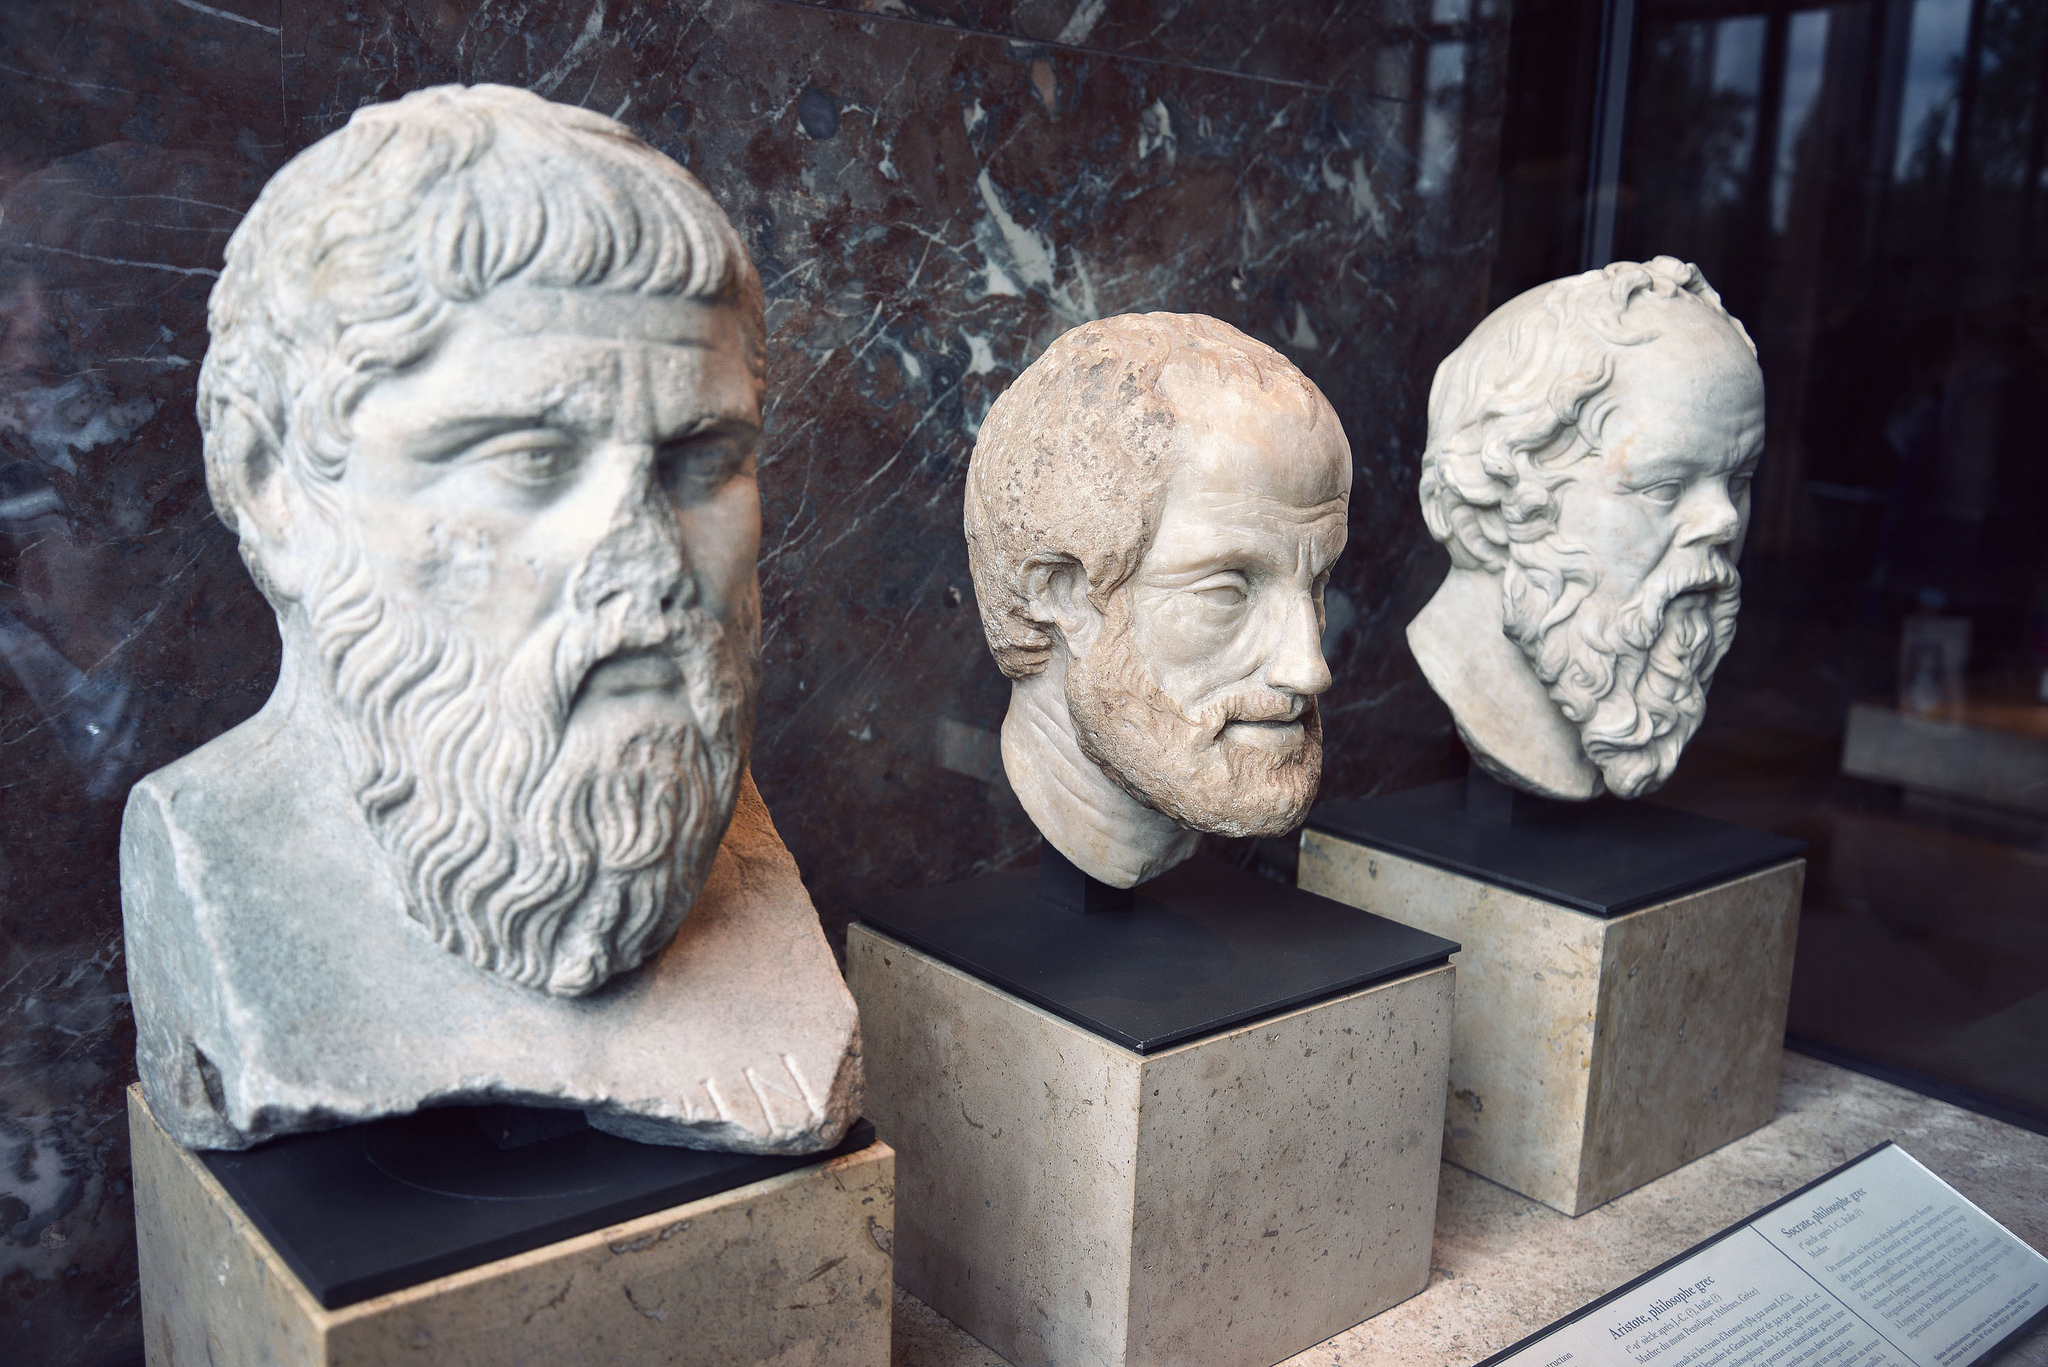 Busts of ancient Greek philosophers Plato, Aristotle, and Socrates.